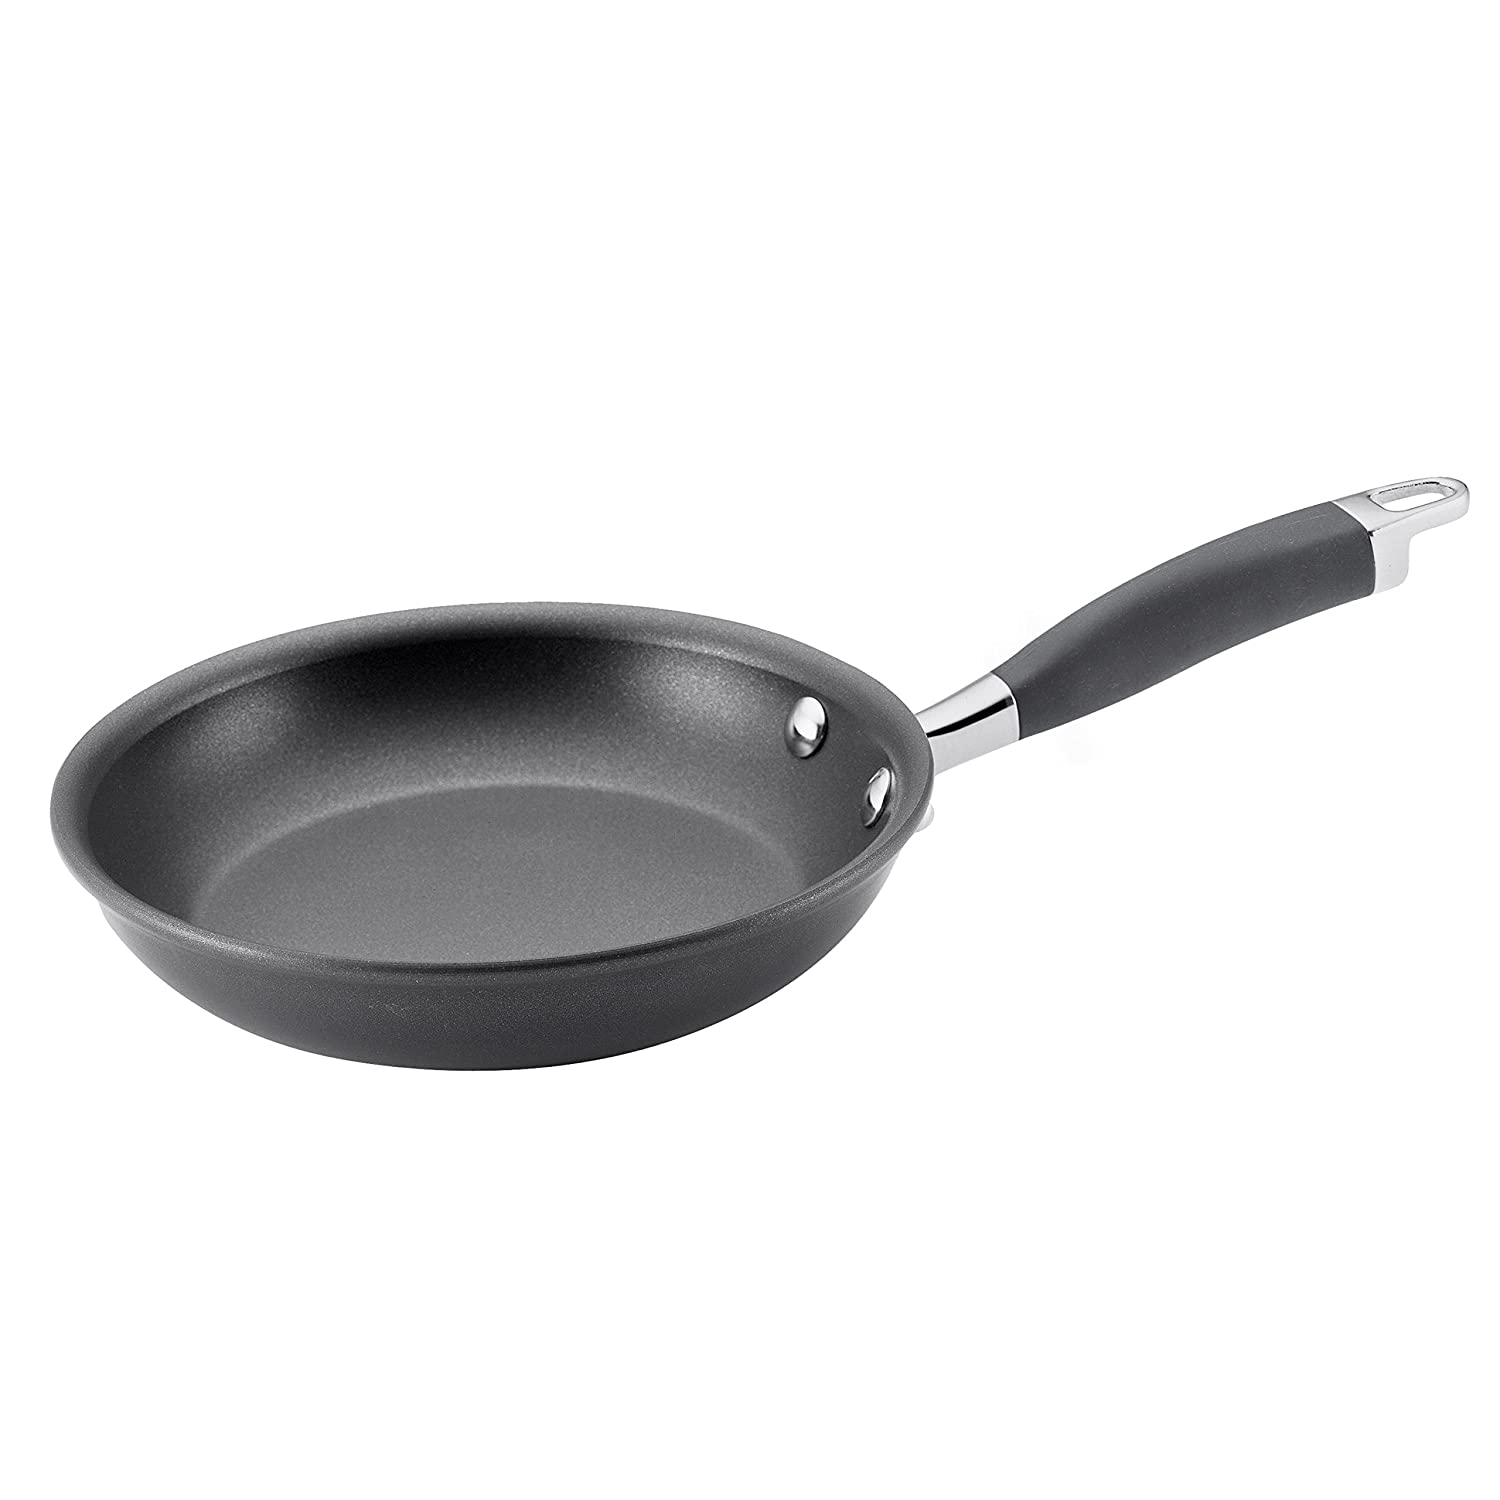 Gray 81888 Anolon Advanced Hard-Anodized Nonstick 10-Inch French Skillet